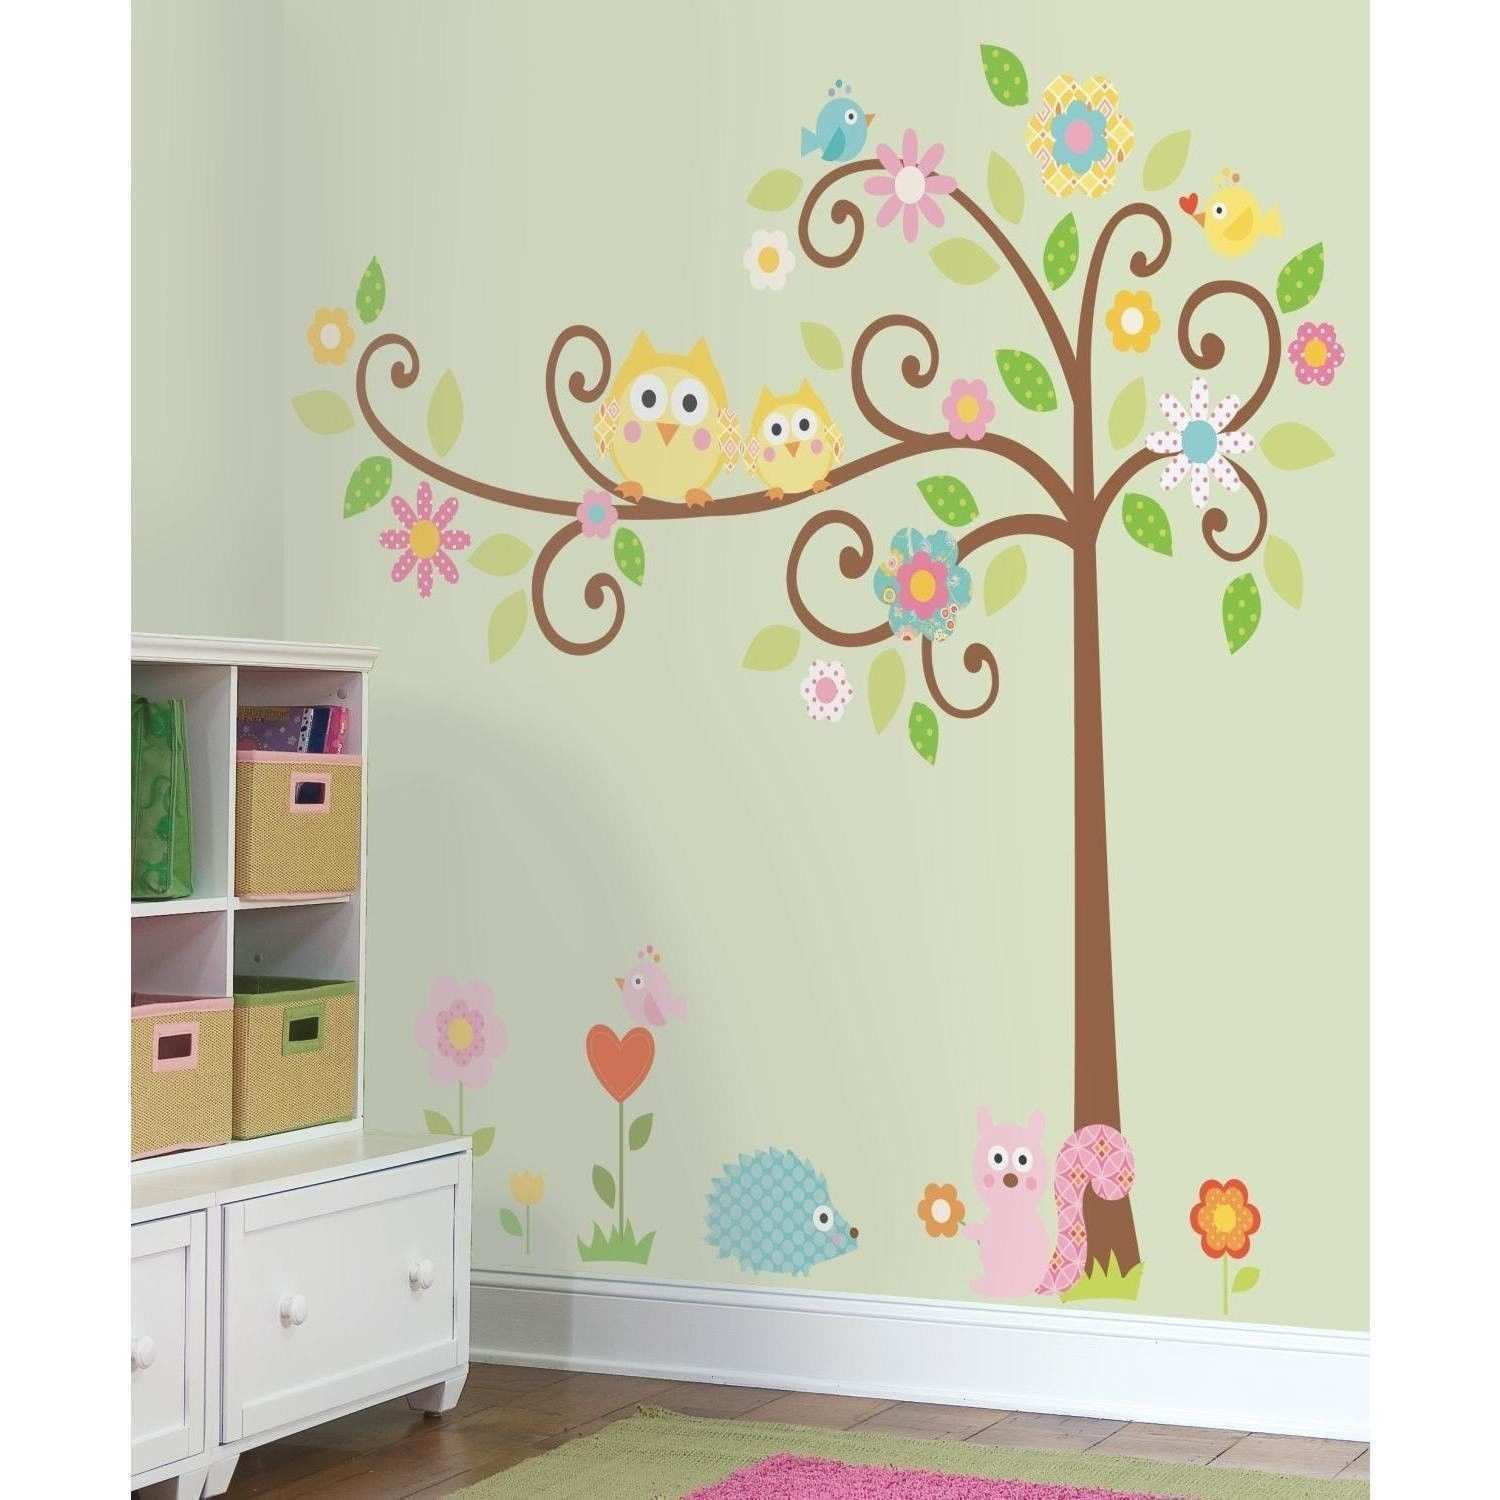 36 New Removable Wall Stickers